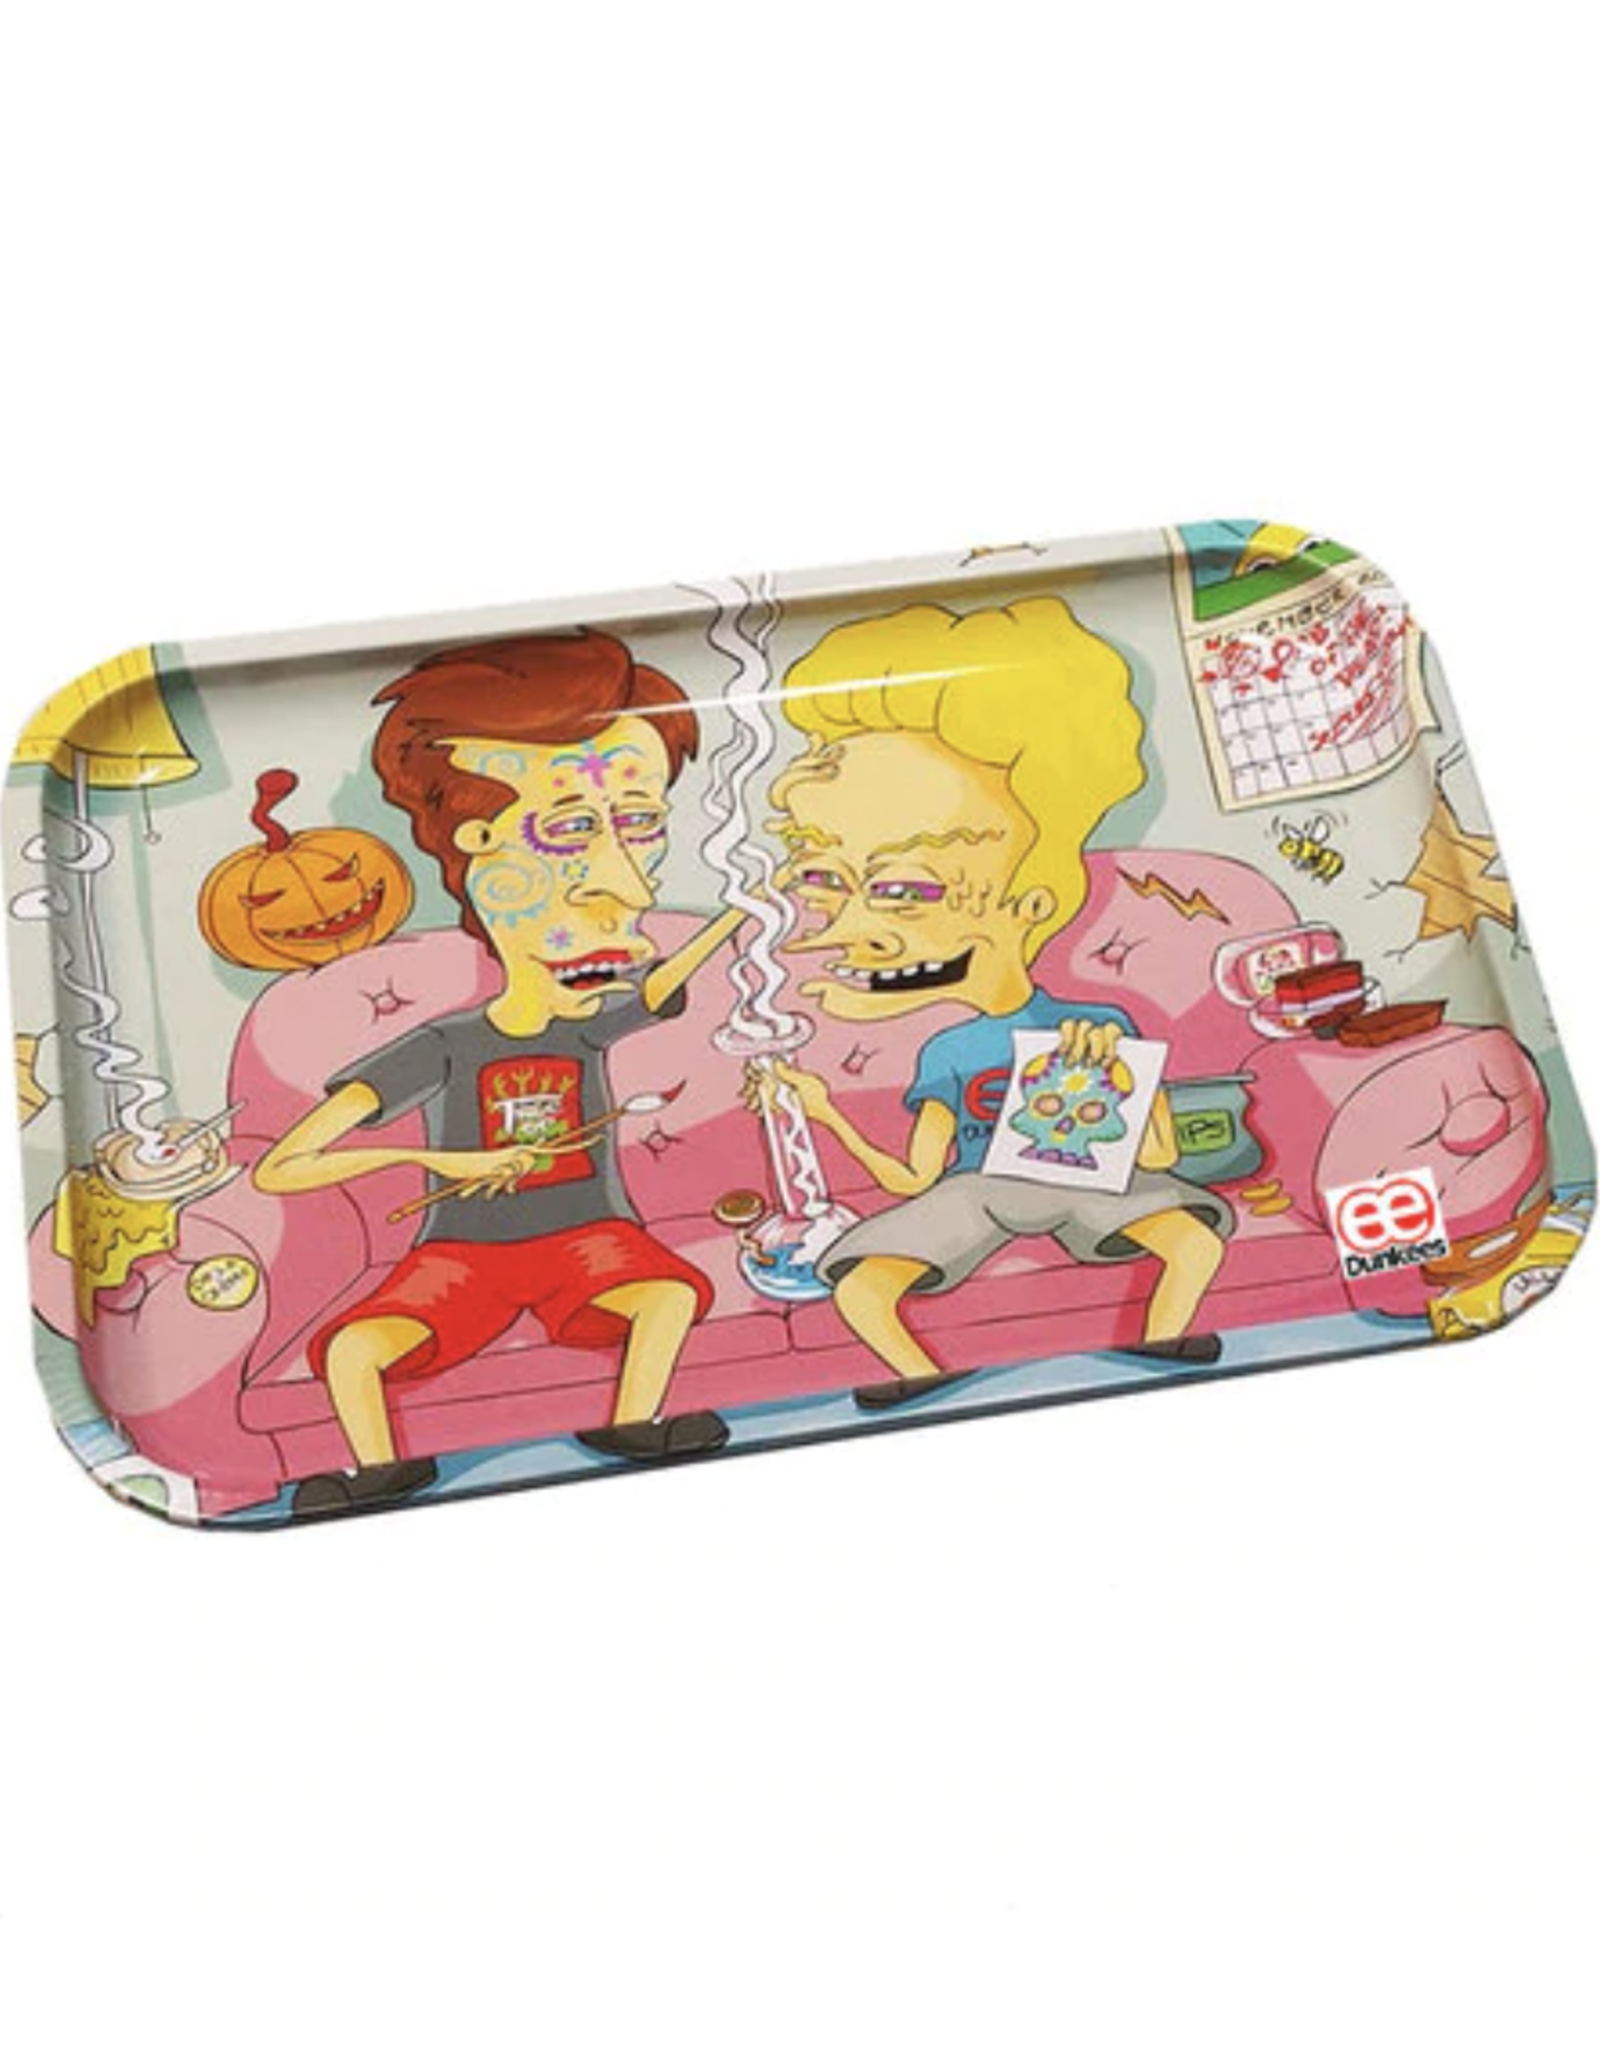 """Dunkees 13"""" x 9"""" Rolling Tray - Dab of the Dead"""